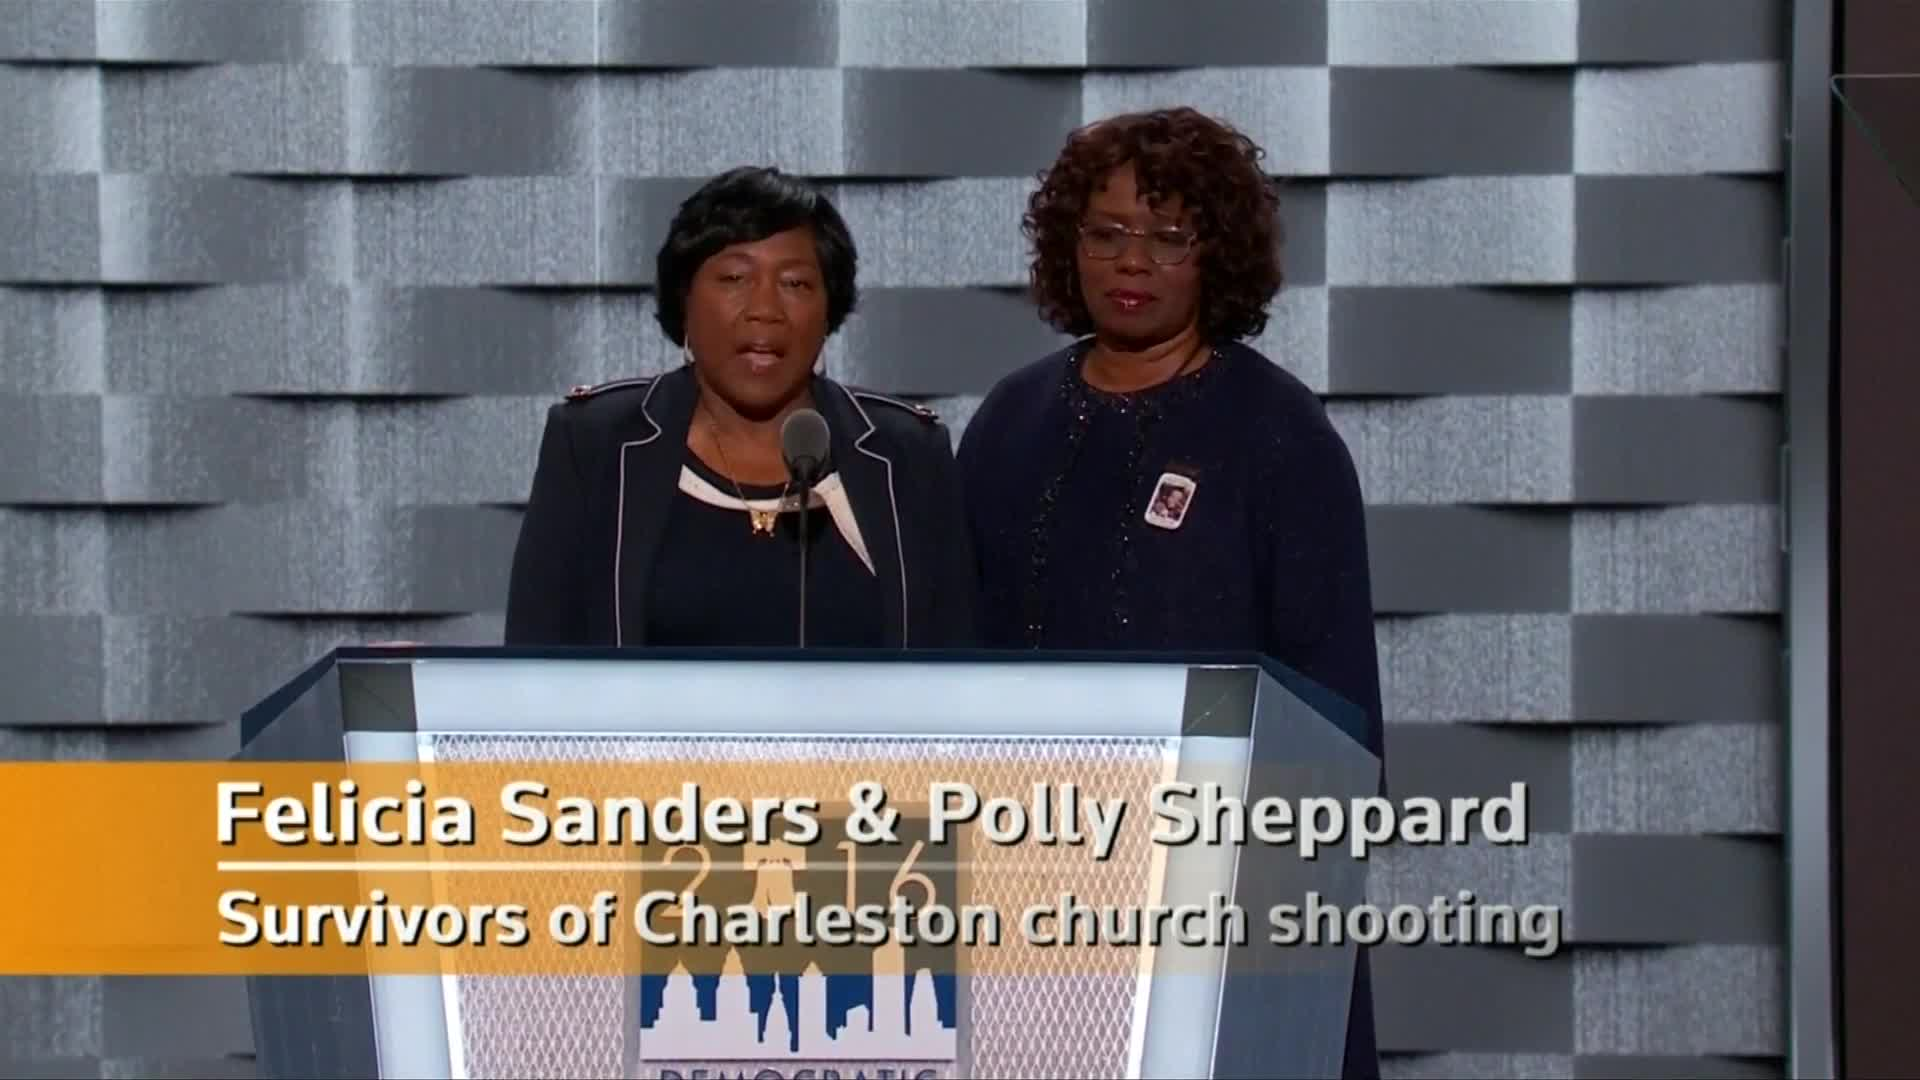 Giffords, advocates call for gun law reform at DNC